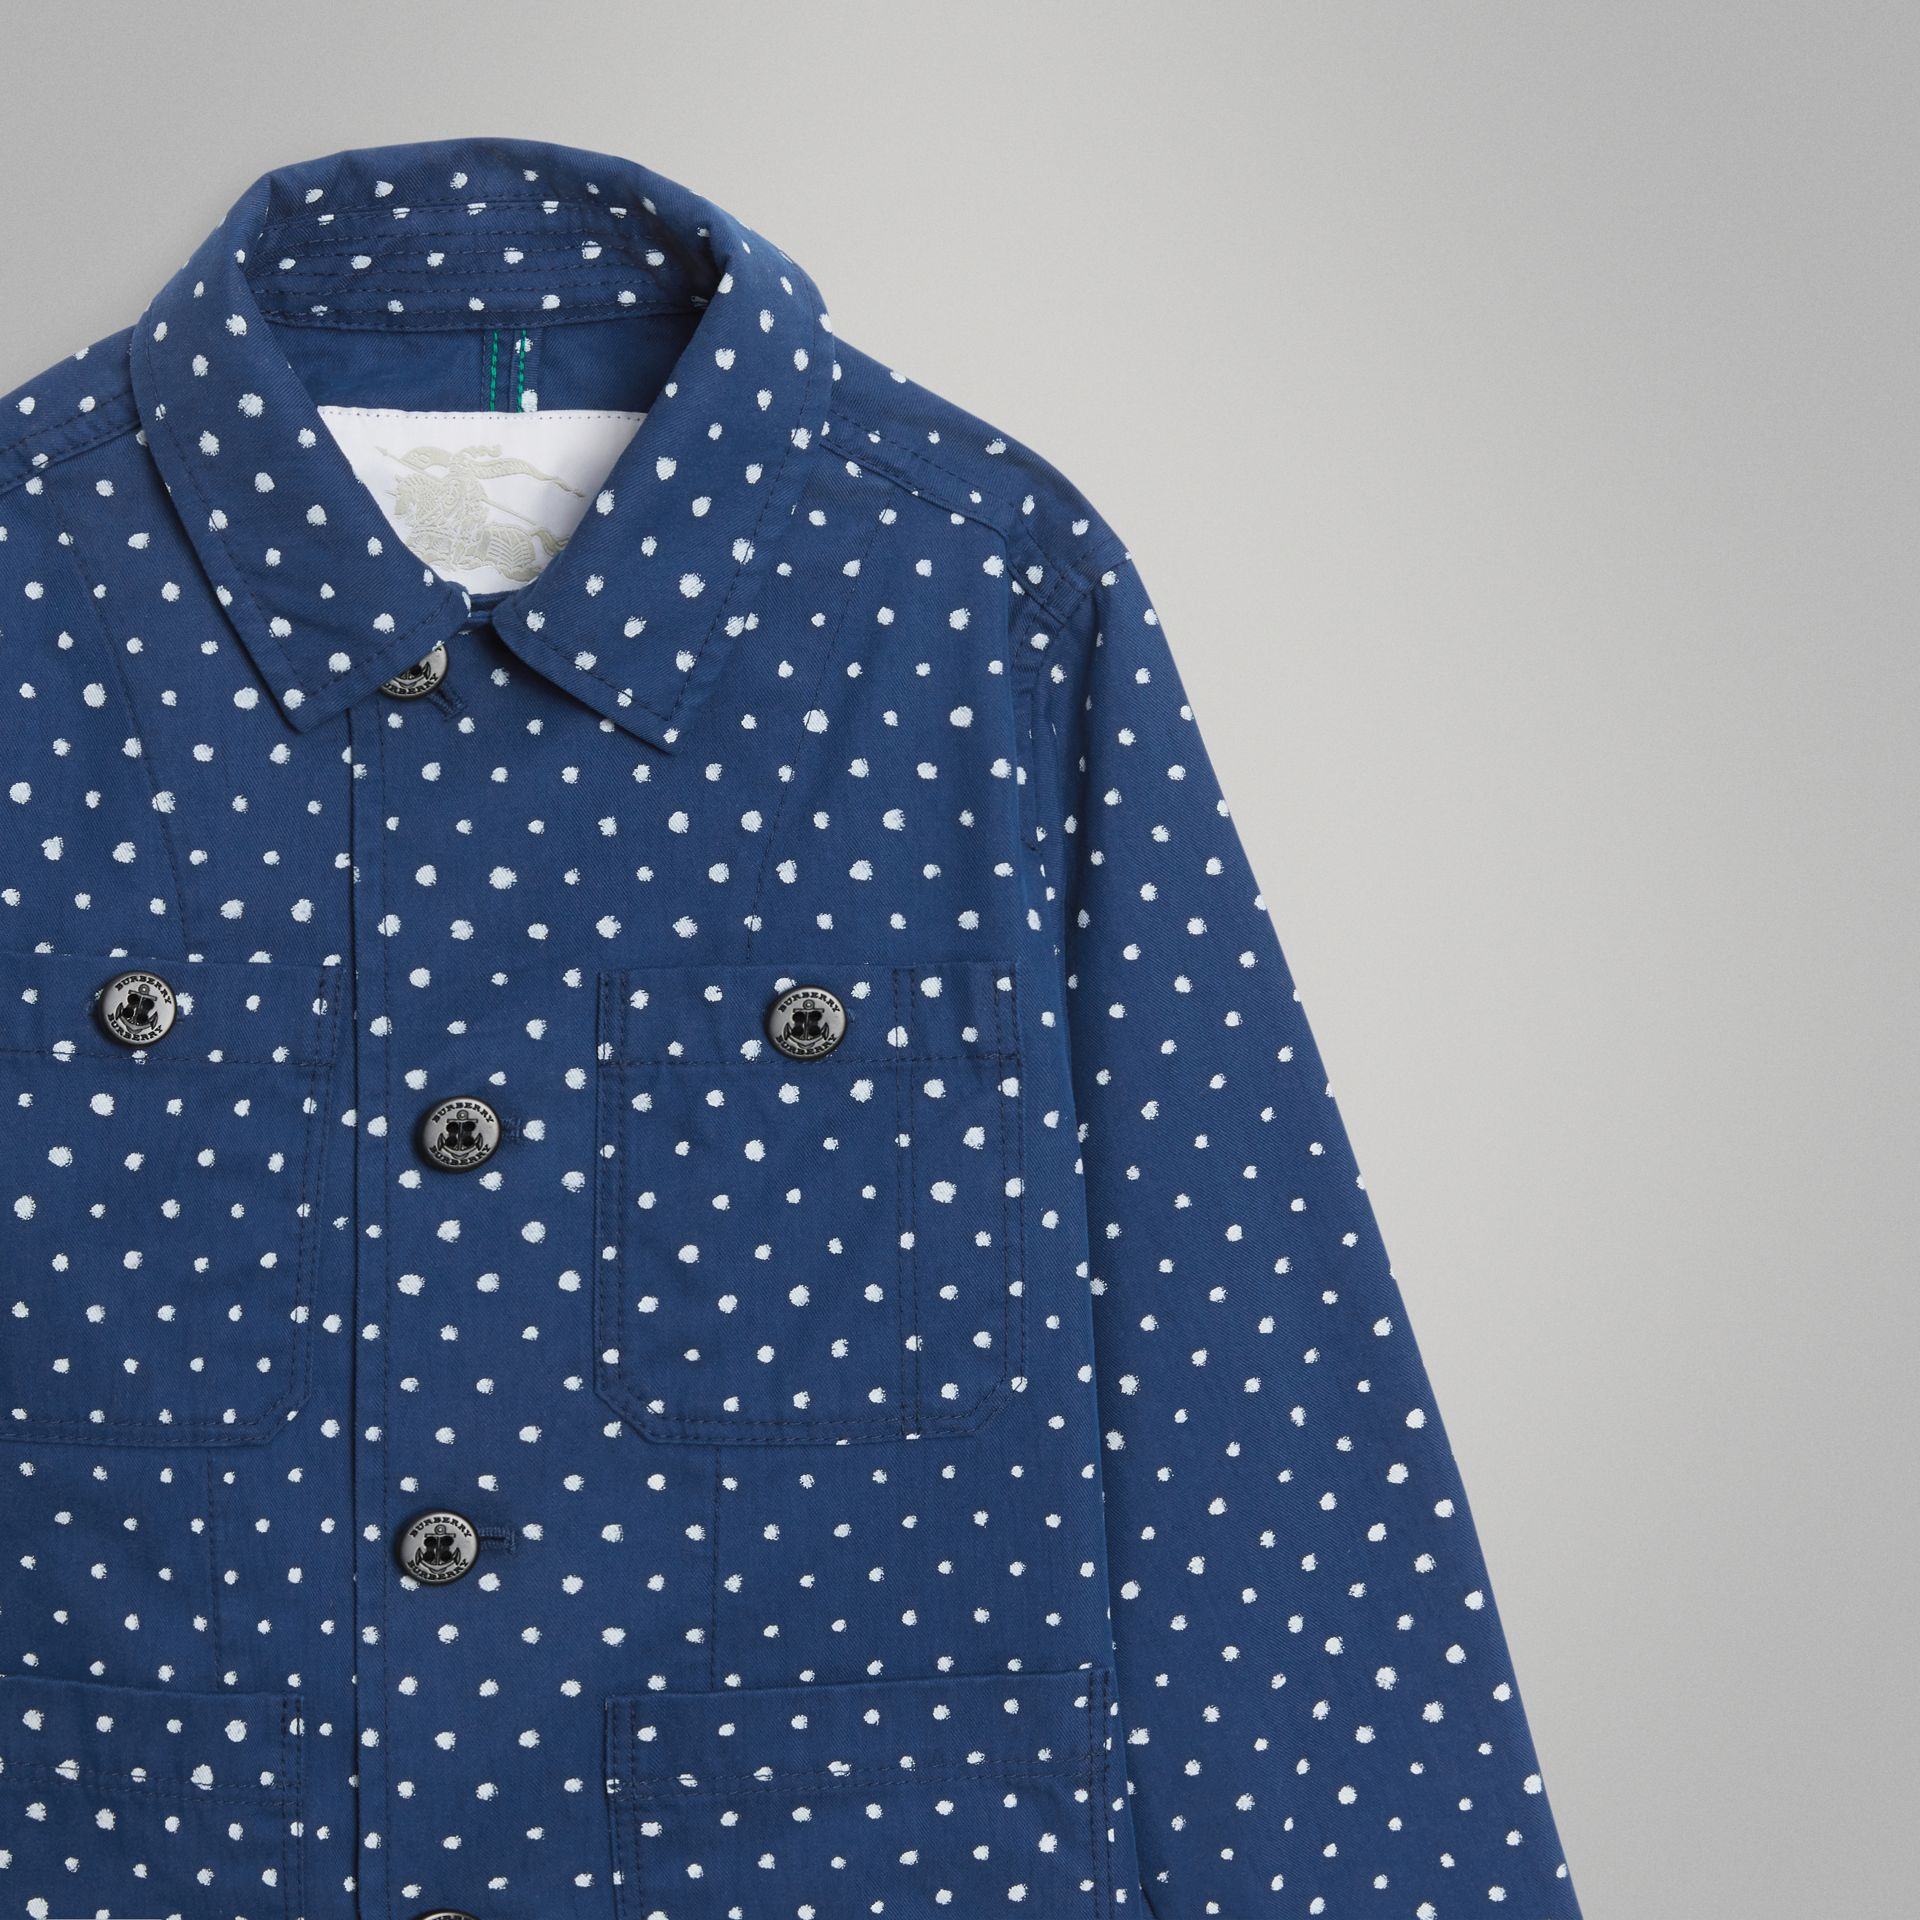 Spot Print Cotton Blend Jacket in Bright Navy | Burberry - gallery image 4